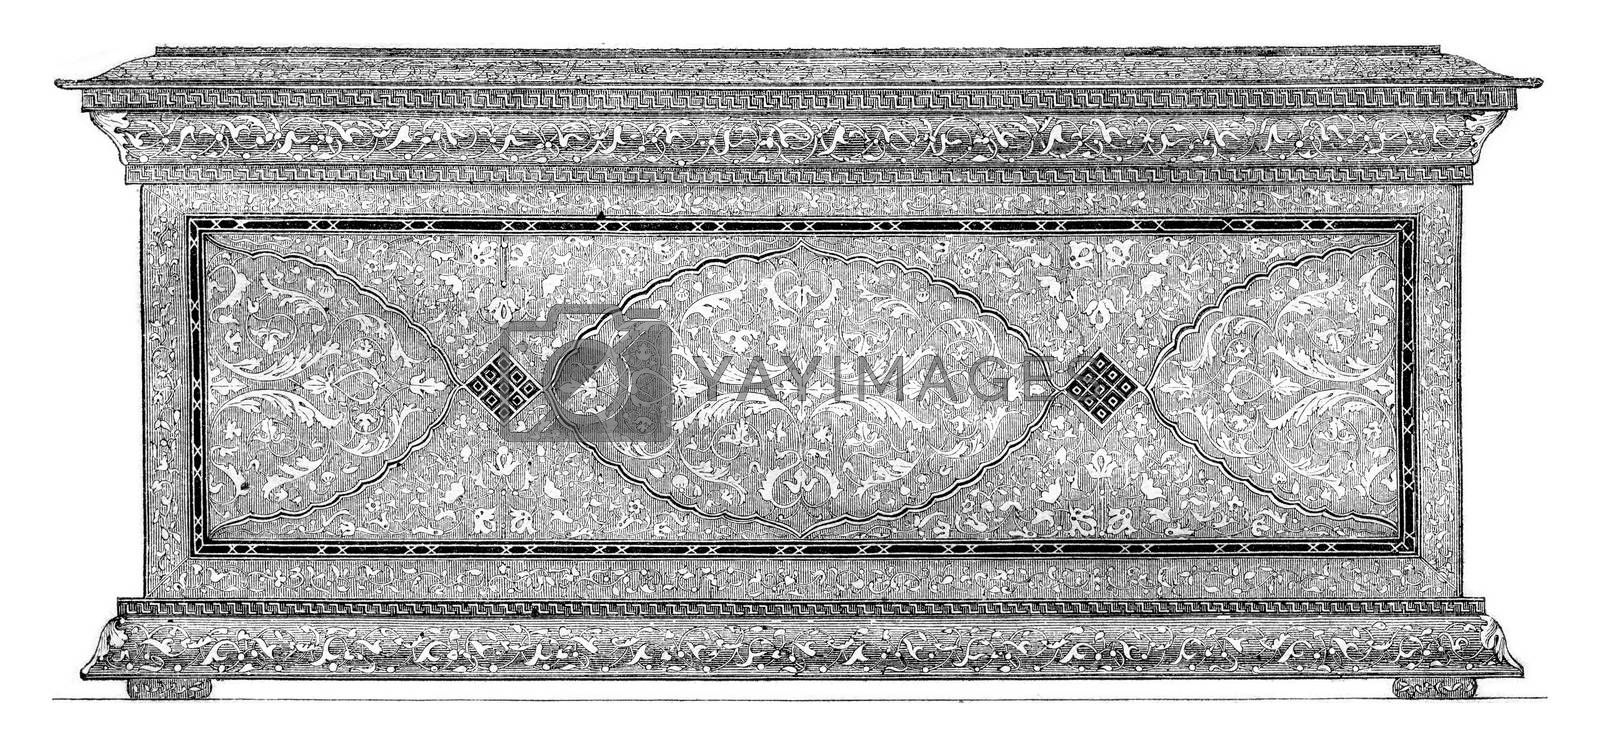 Exterior view of the cassette all Agemina, vintage engraved illustration. Magasin Pittoresque 1857.